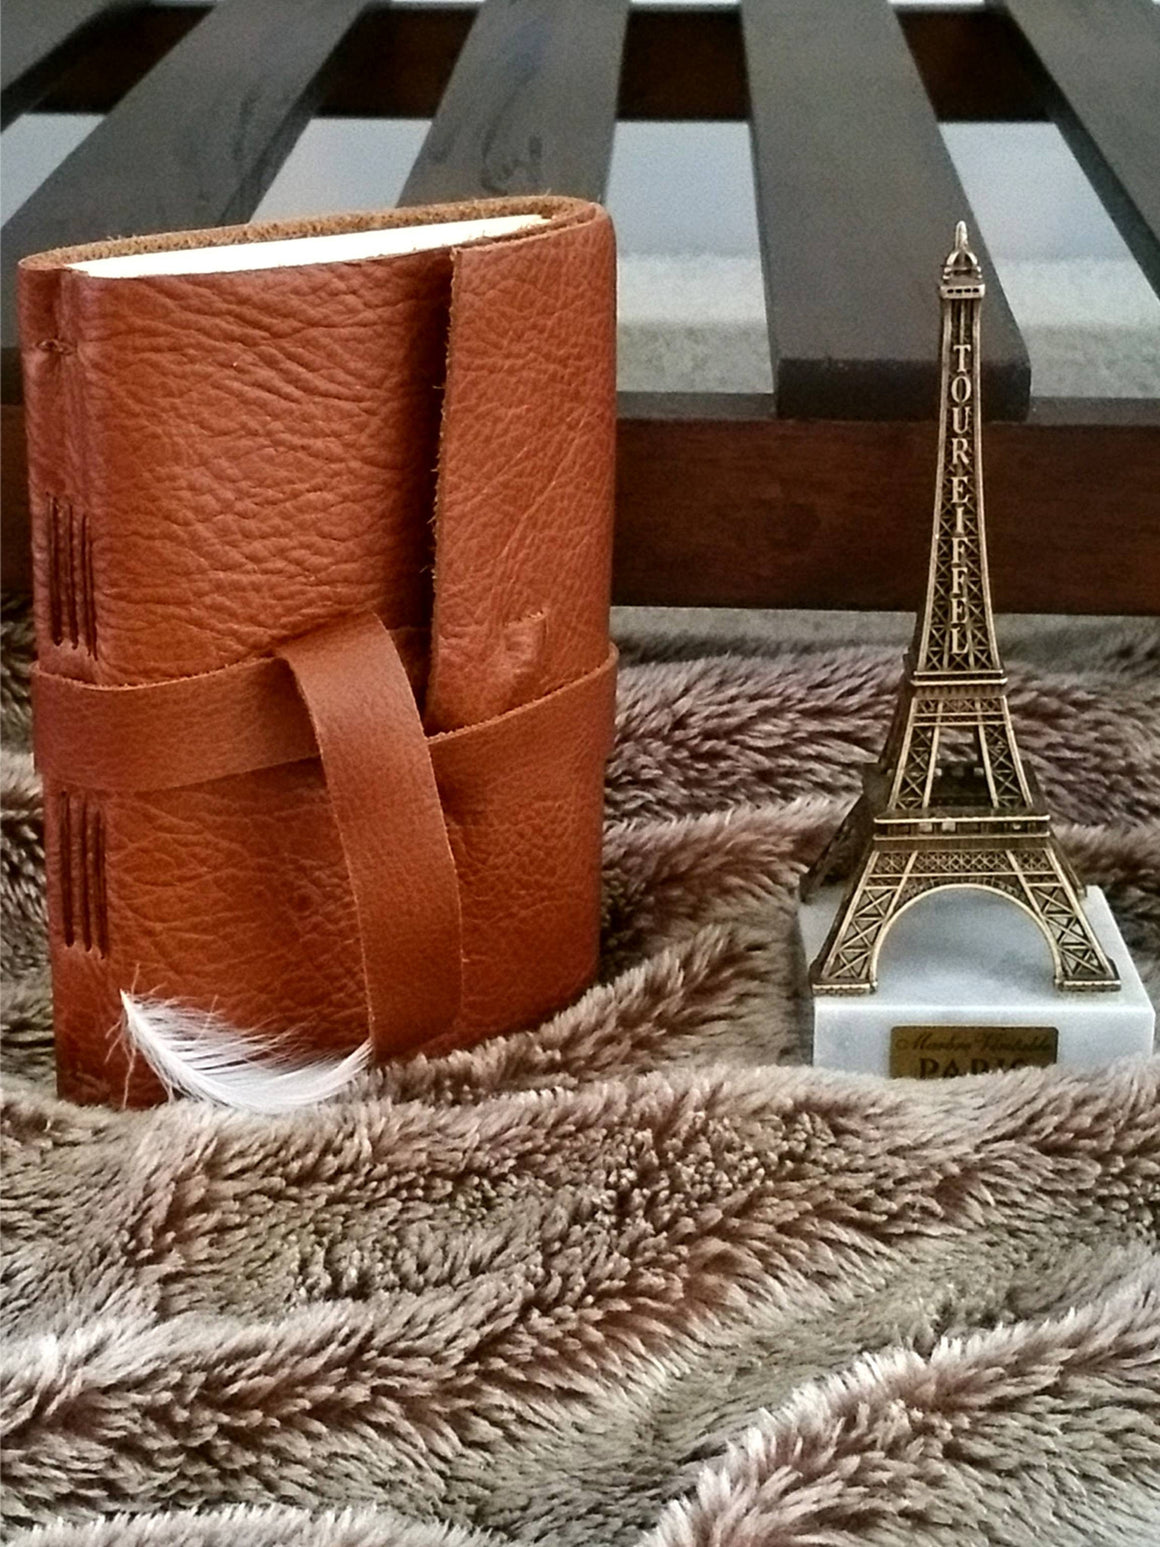 Brown Leather Journals, Leather Books, Leather Notebooks